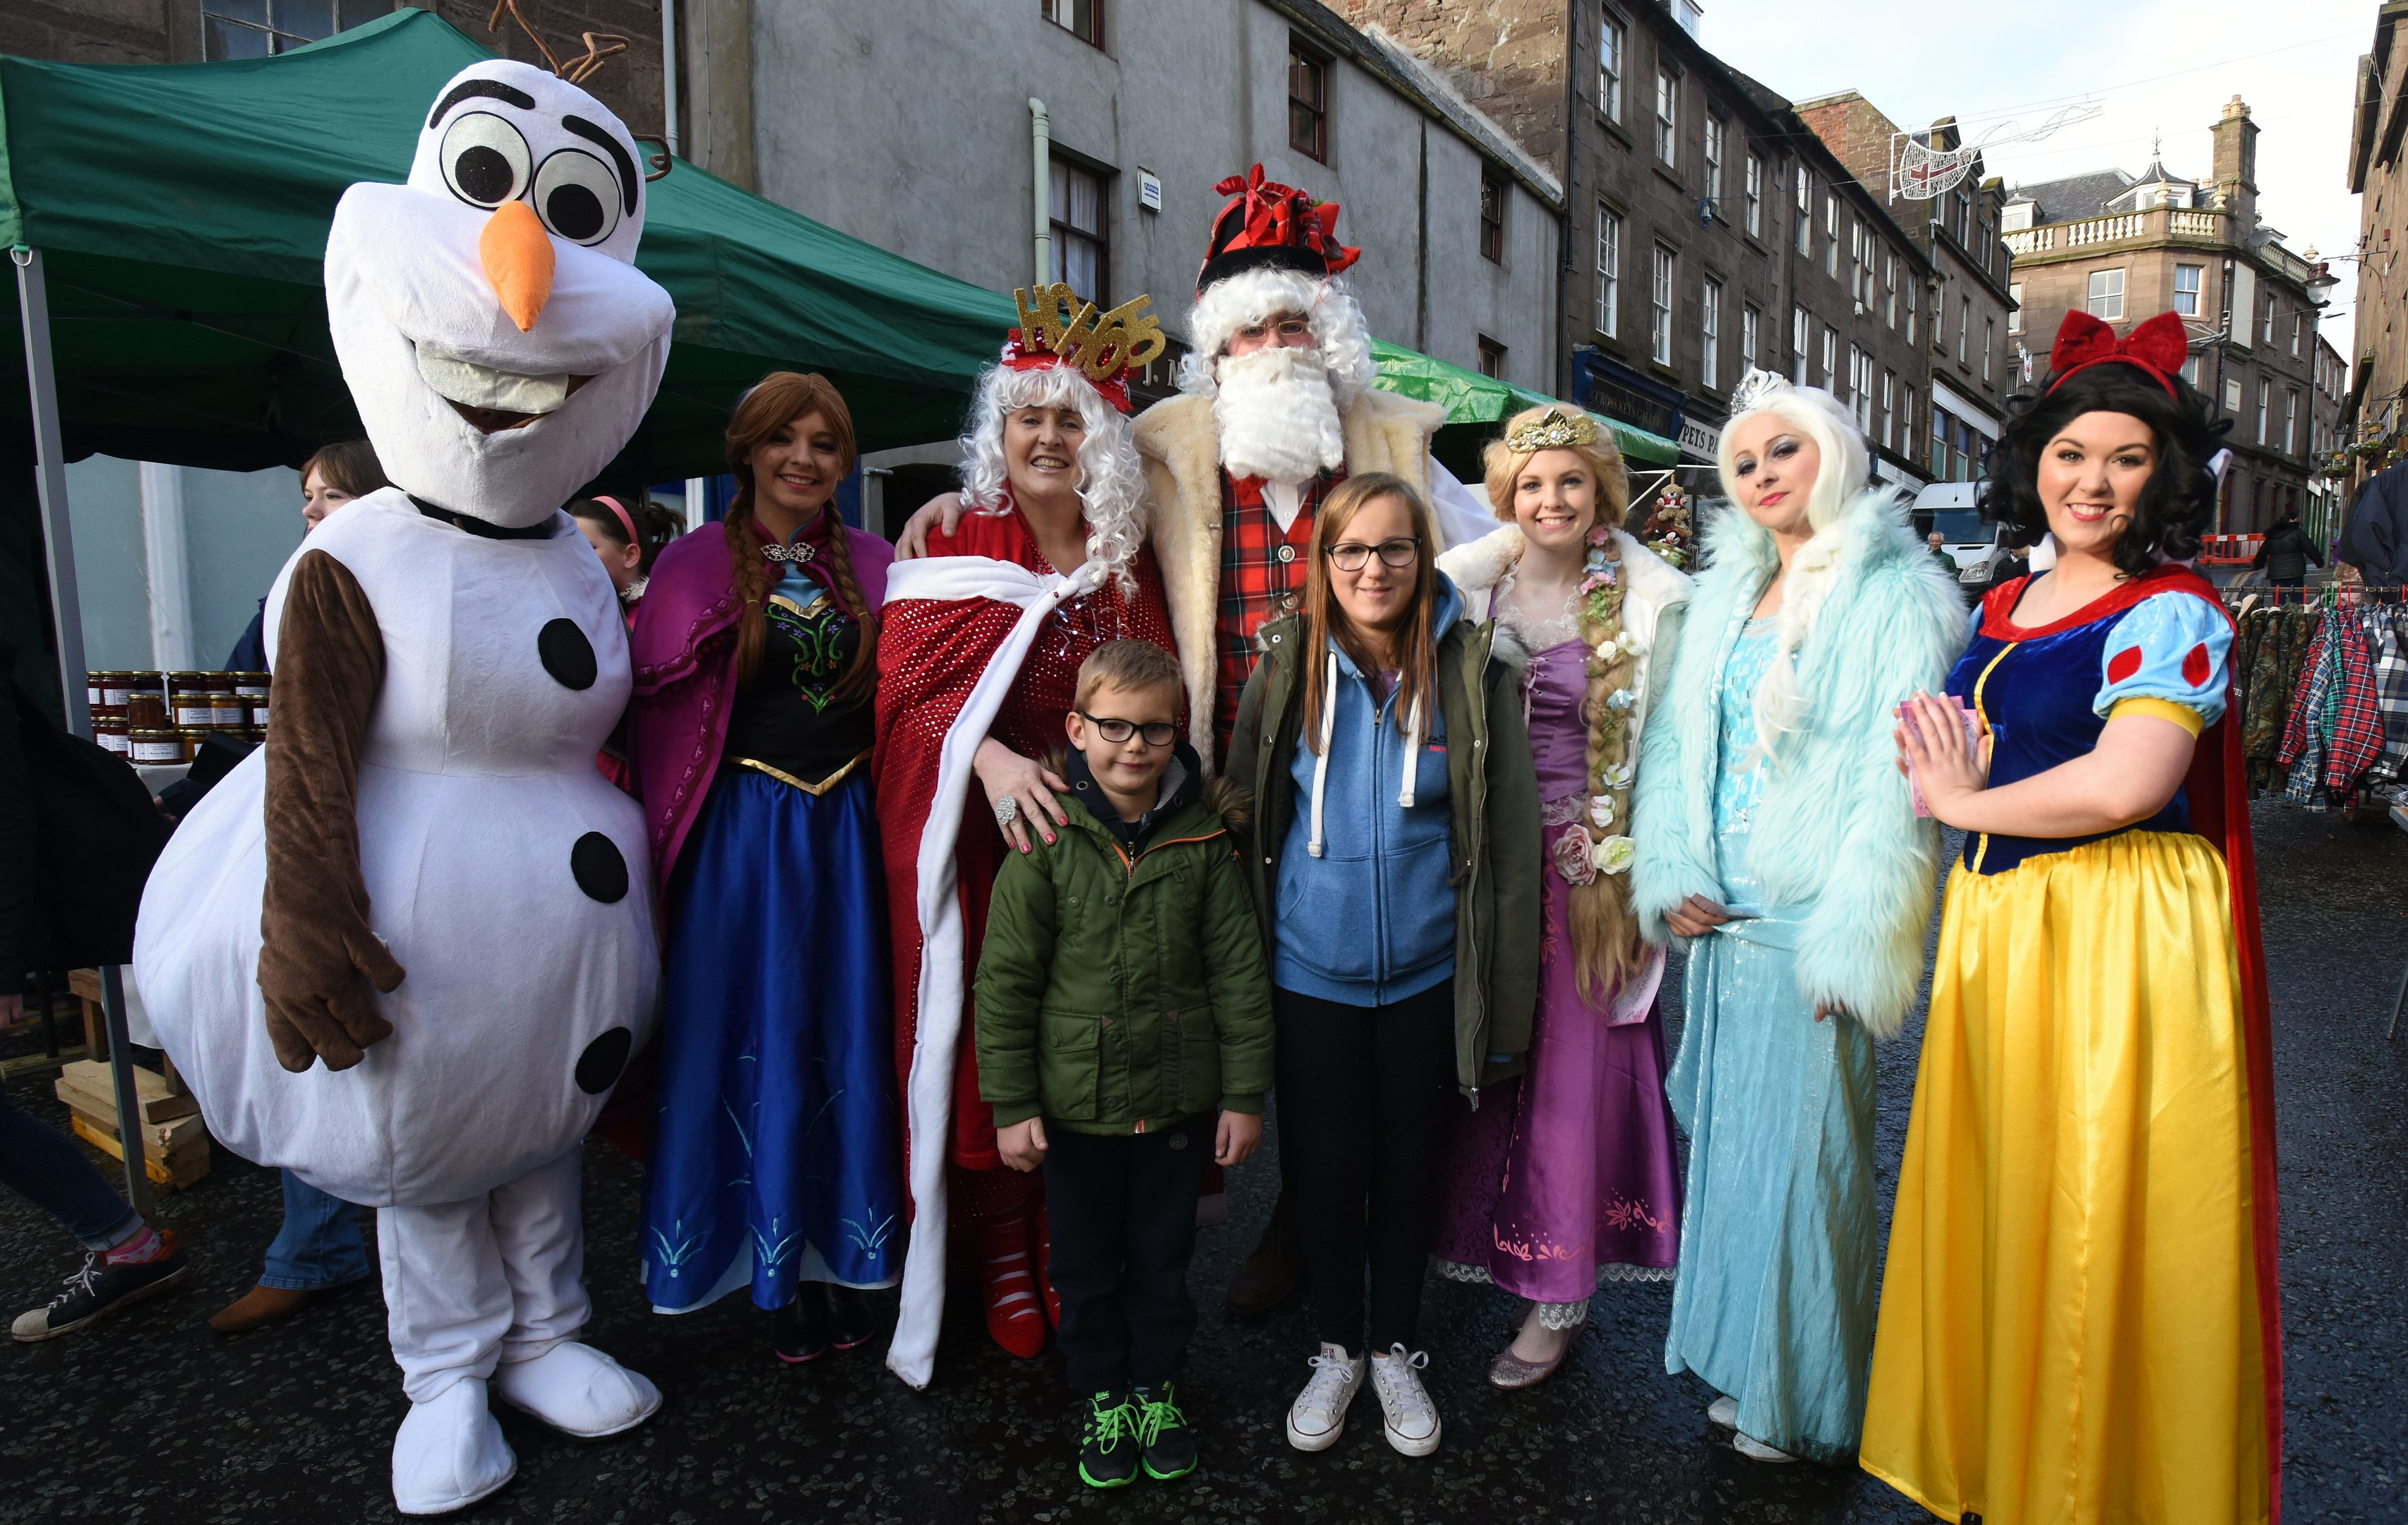 Brechins Christmas celebrations featured Santa with Mrs Claus and Disney characters by Party Wishes with Dalin and Dasha Keith